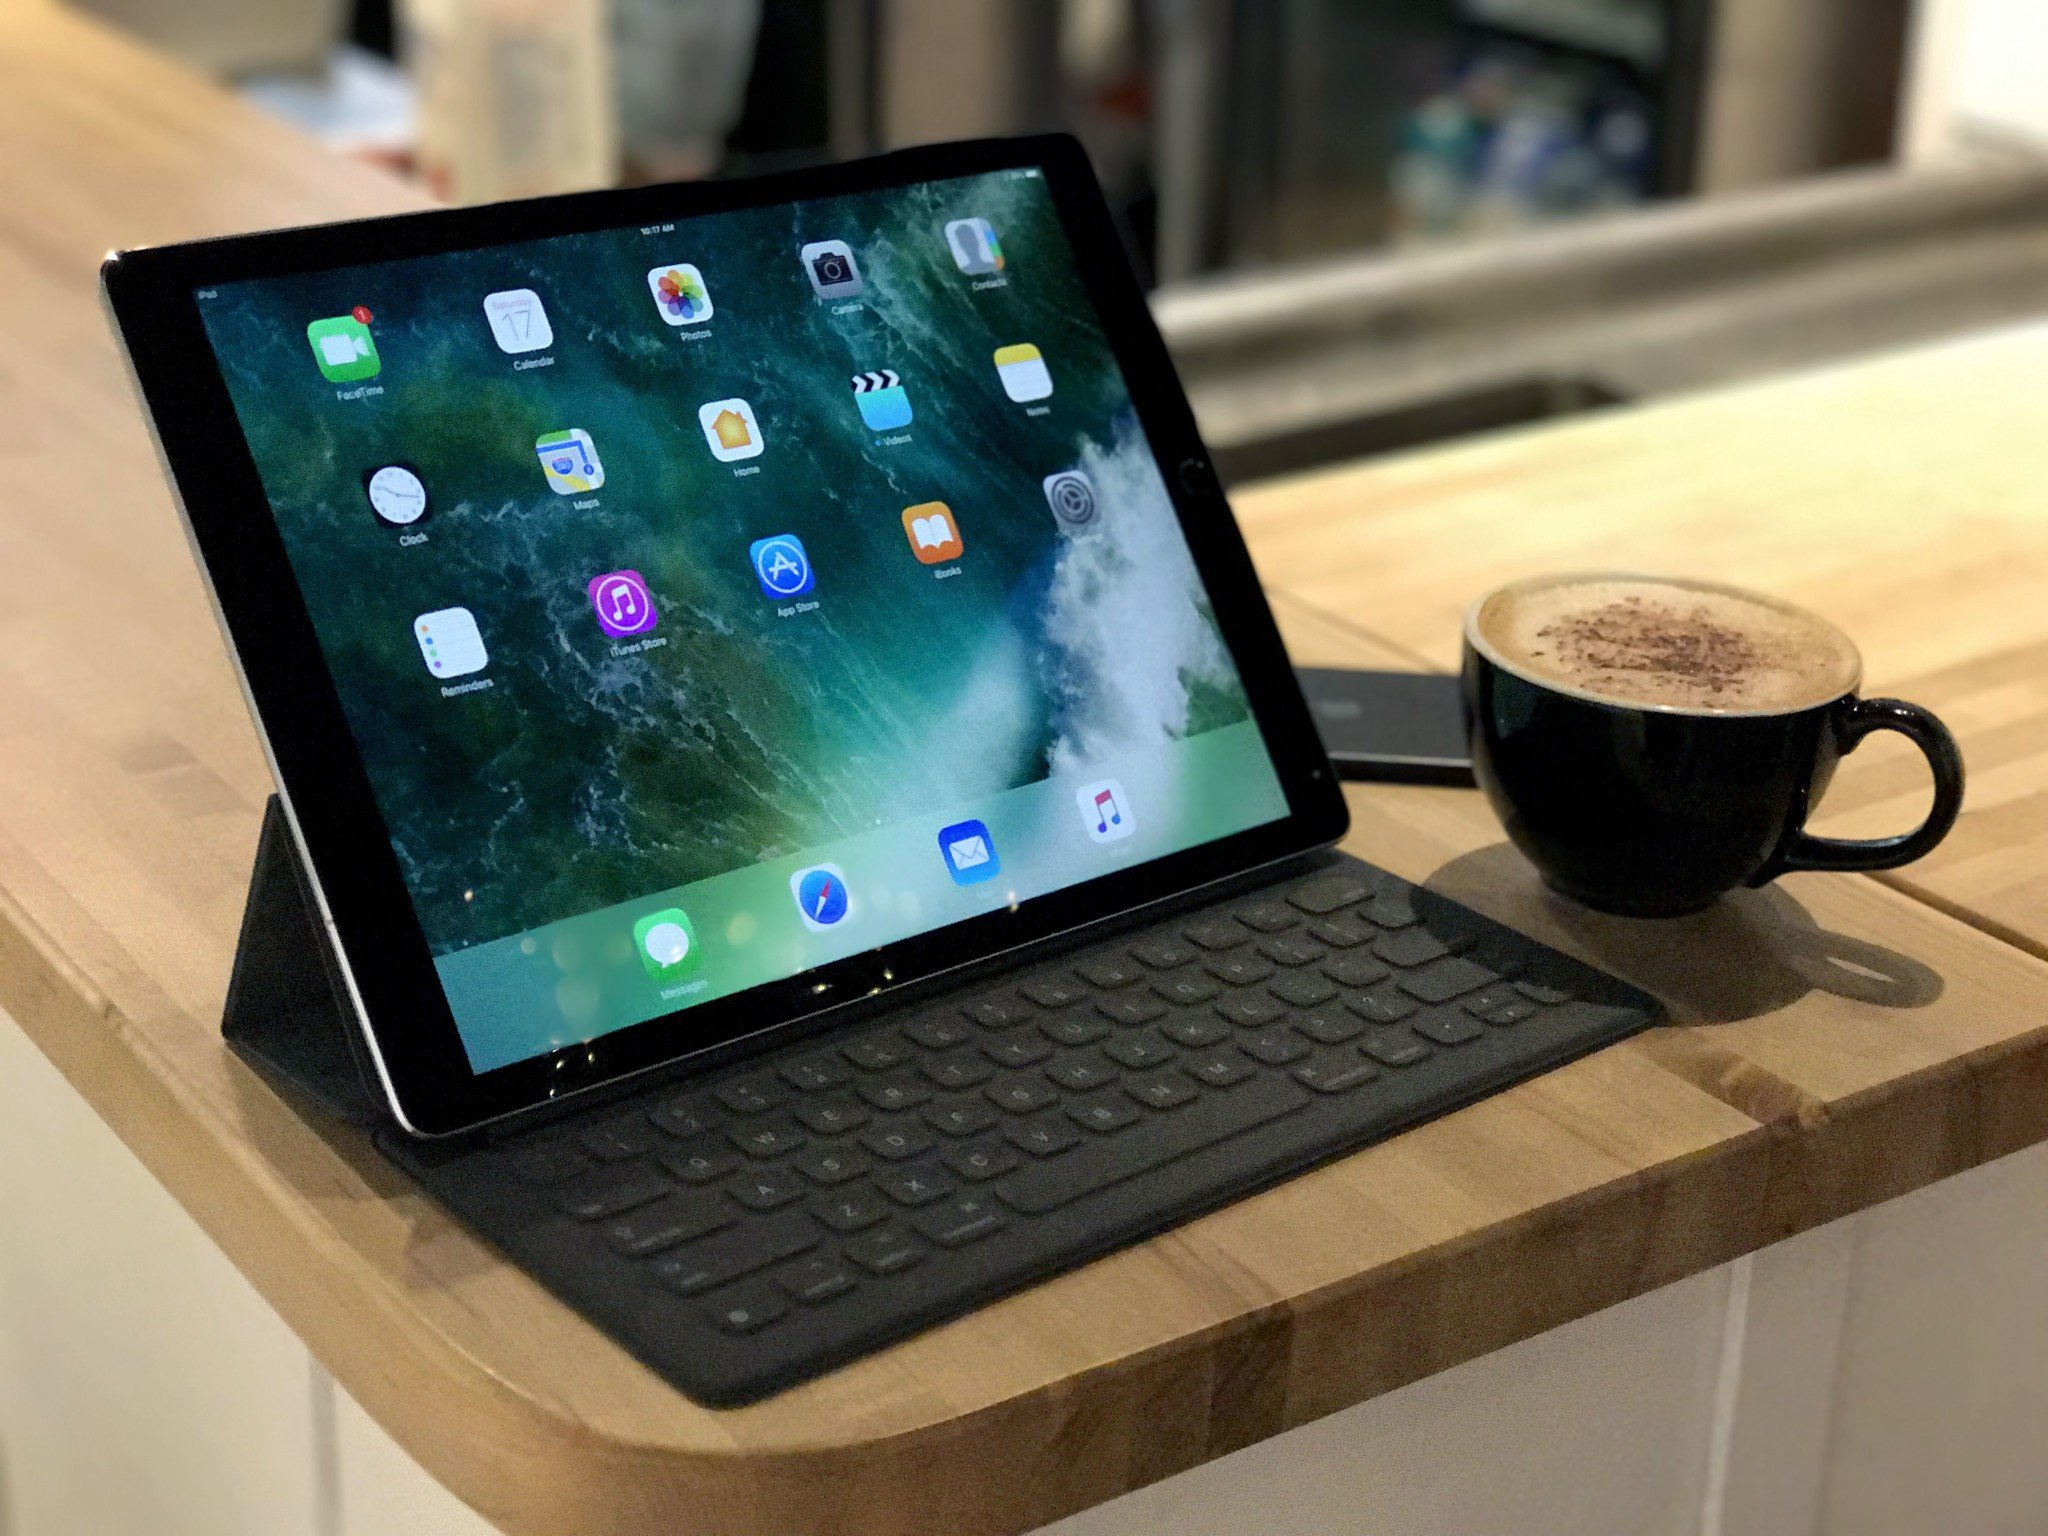 Fall Wallpaper For My Phone 12 9 Inch Ipad Pro Review 2017 Bigger Meets Better Imore